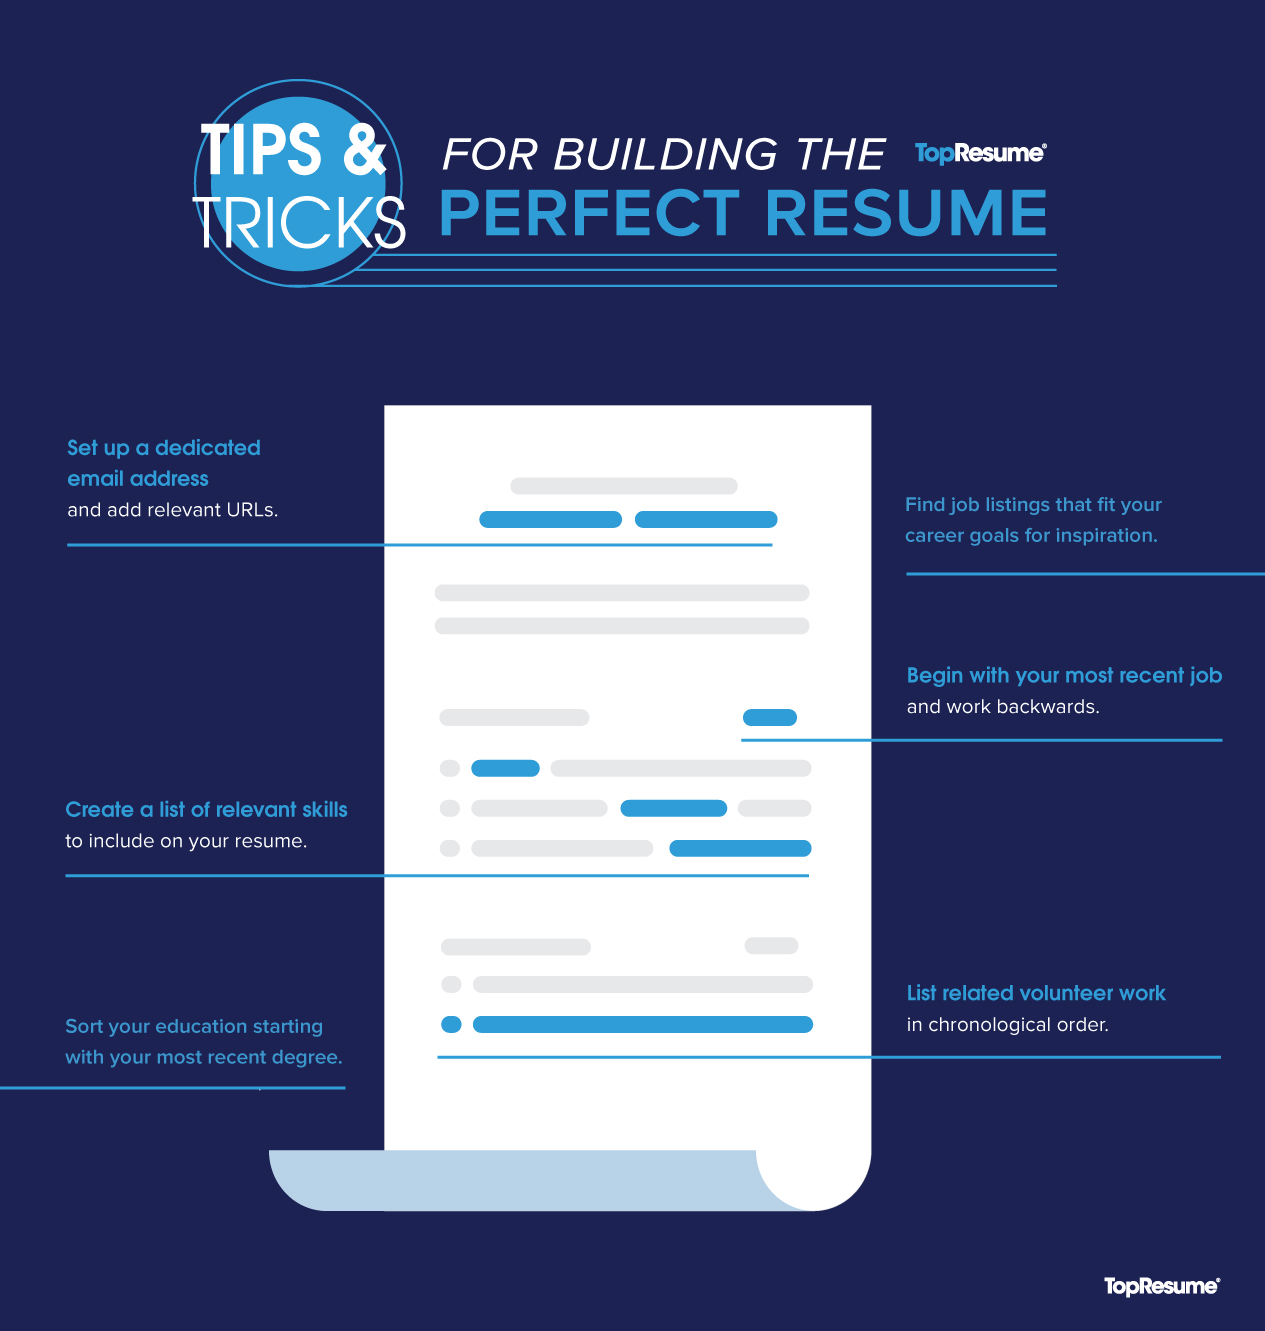 steps to writing the perfect resume topresume tips for making great 11stepsinfographic Resume Tips For Making A Great Resume